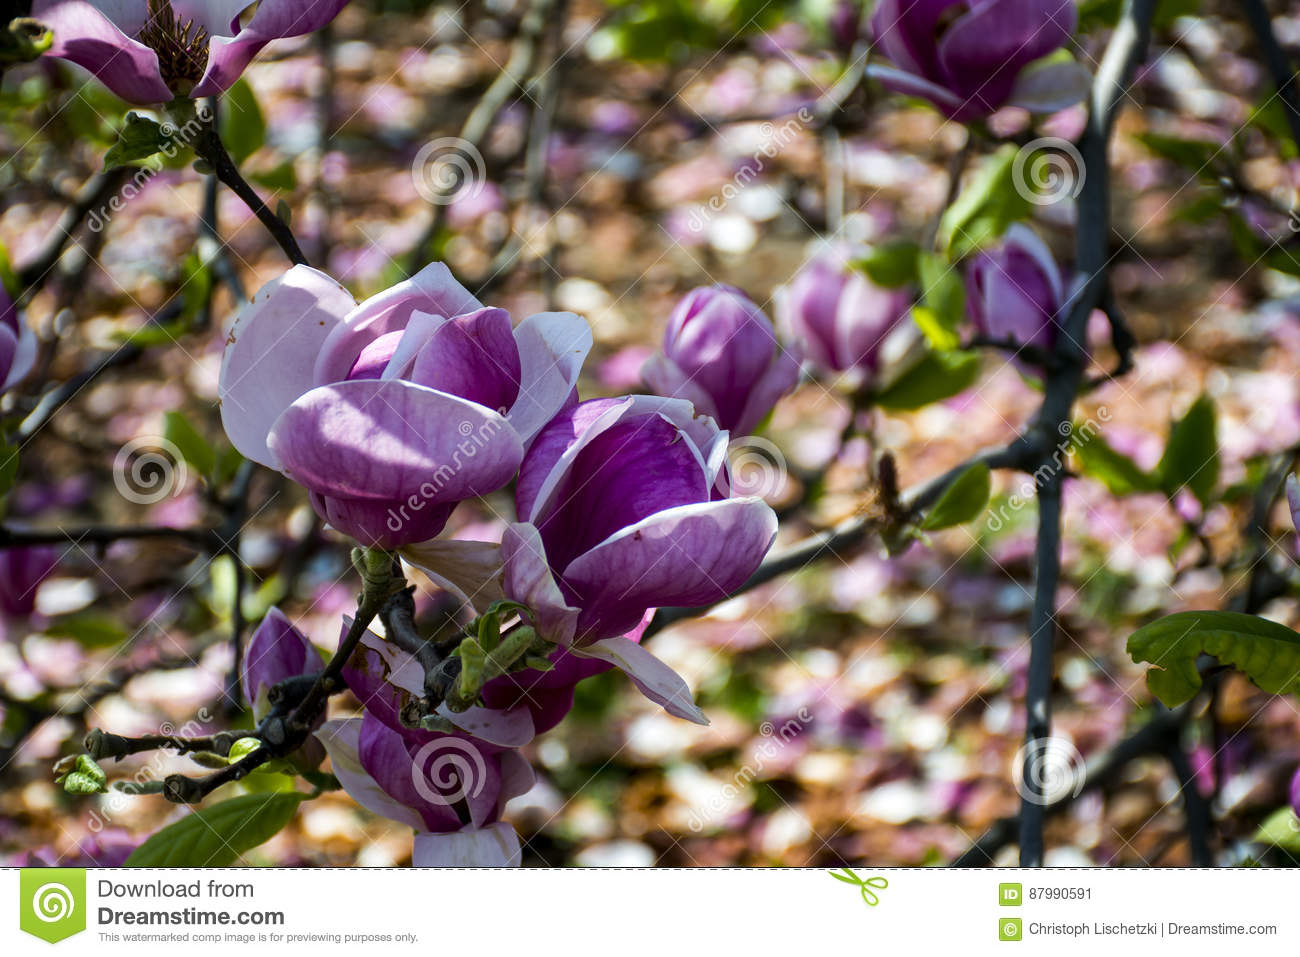 Bloomy magnolia tree big pink flowers blossom stock image image of bloomy magnolia tree big pink flowers blossom mightylinksfo